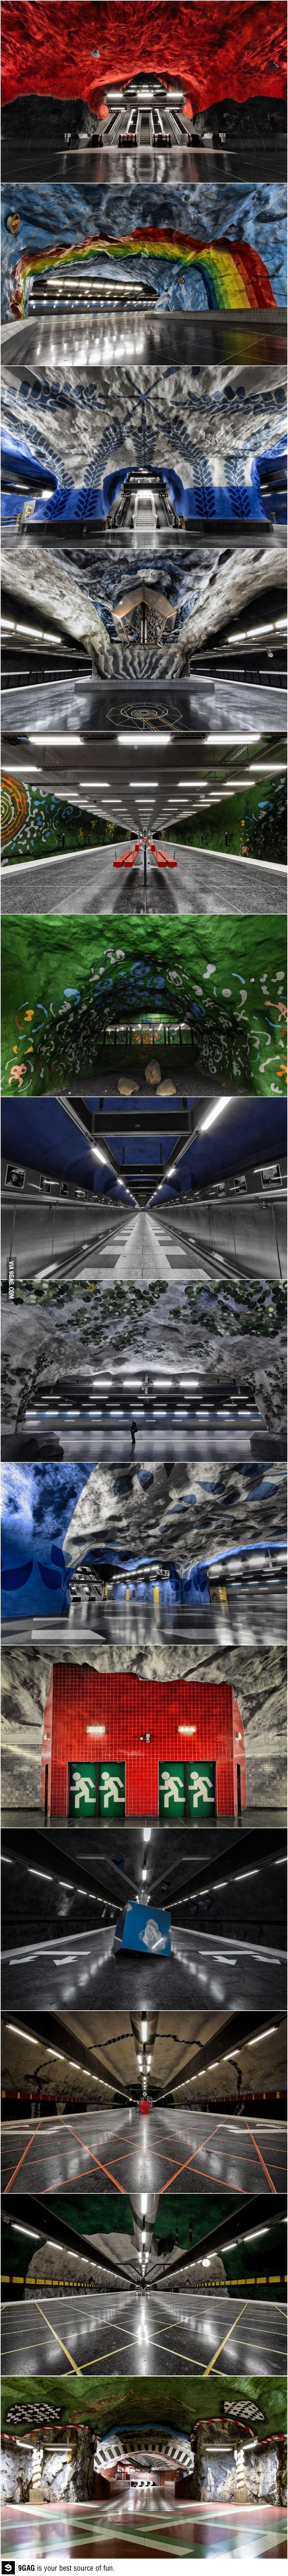 Stunning underground art In Stockholm's metro station